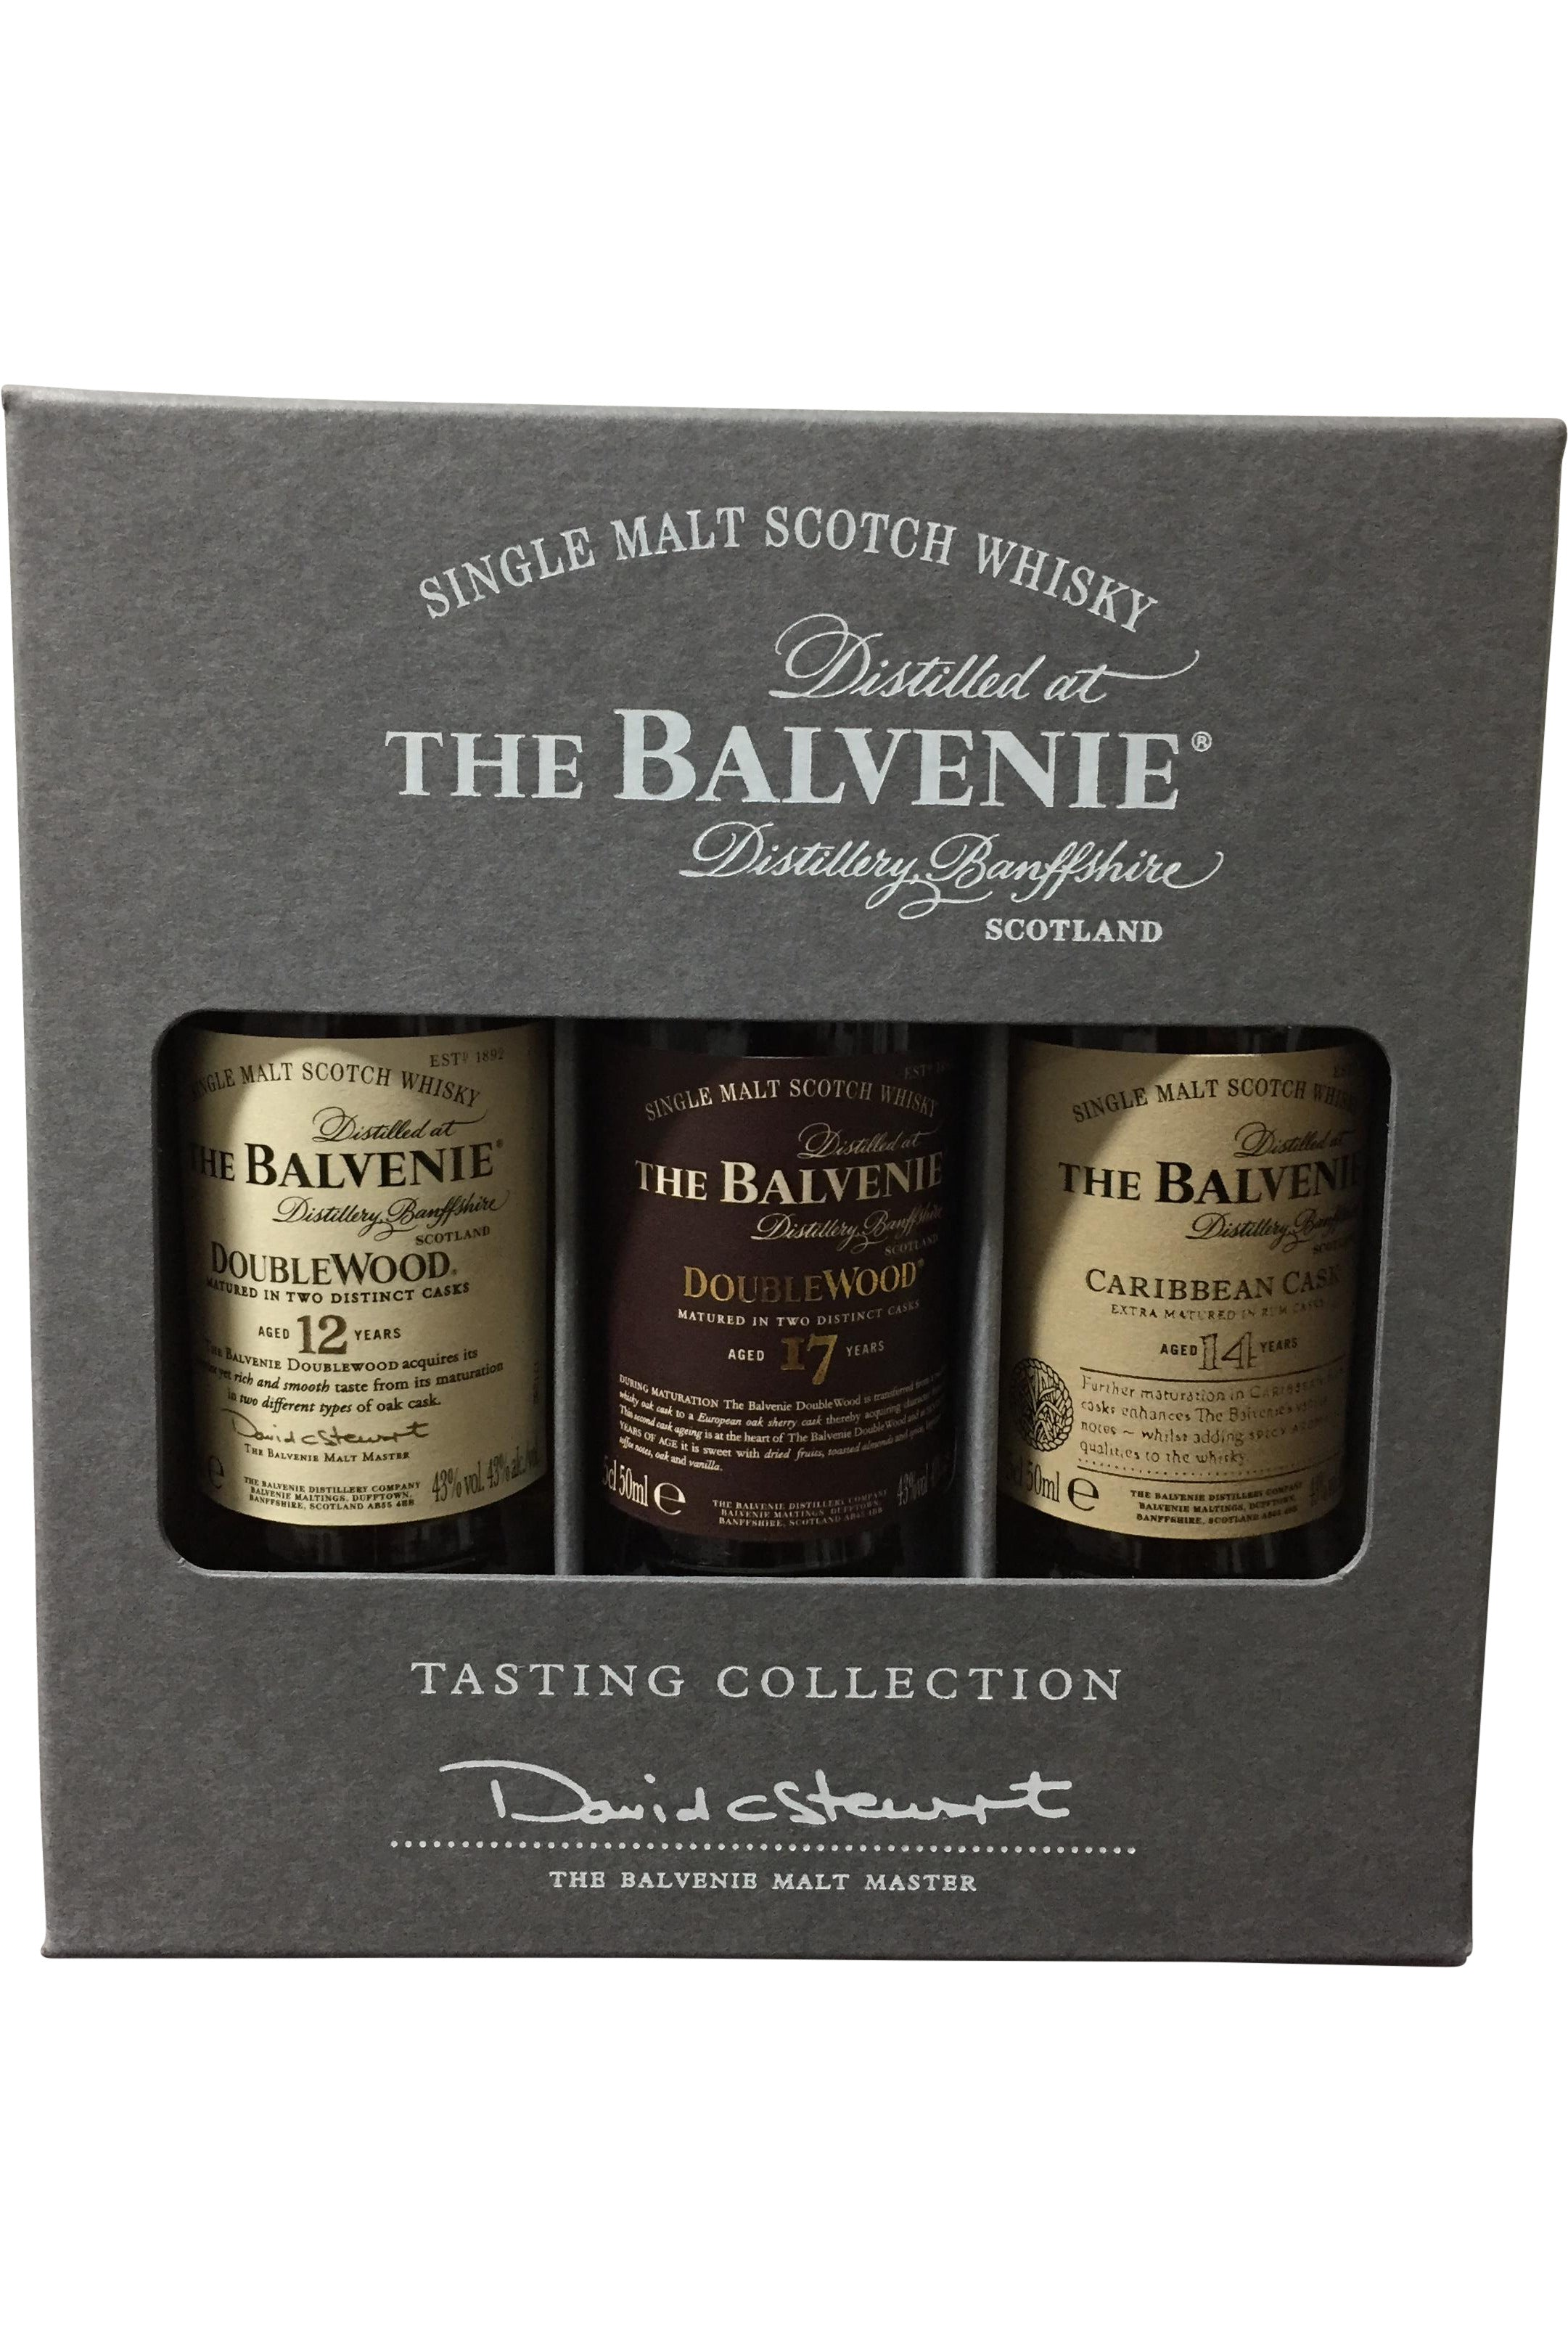 Balvenie Miniatures Gift Pack Whisky - 43% 3x50ml